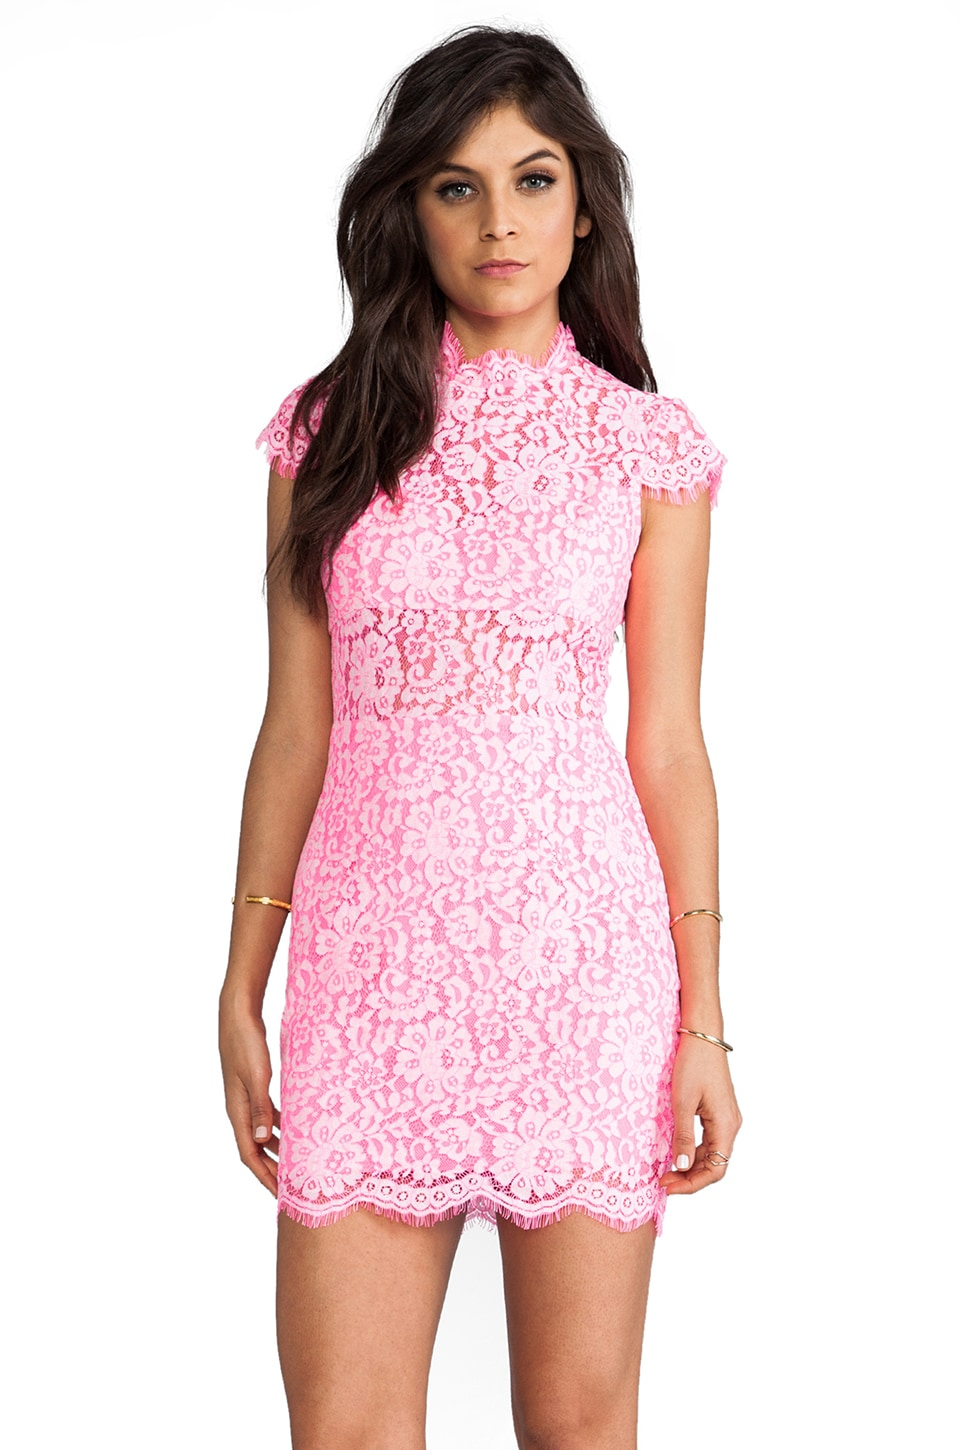 Dolce Vita Behula Dress in Pink